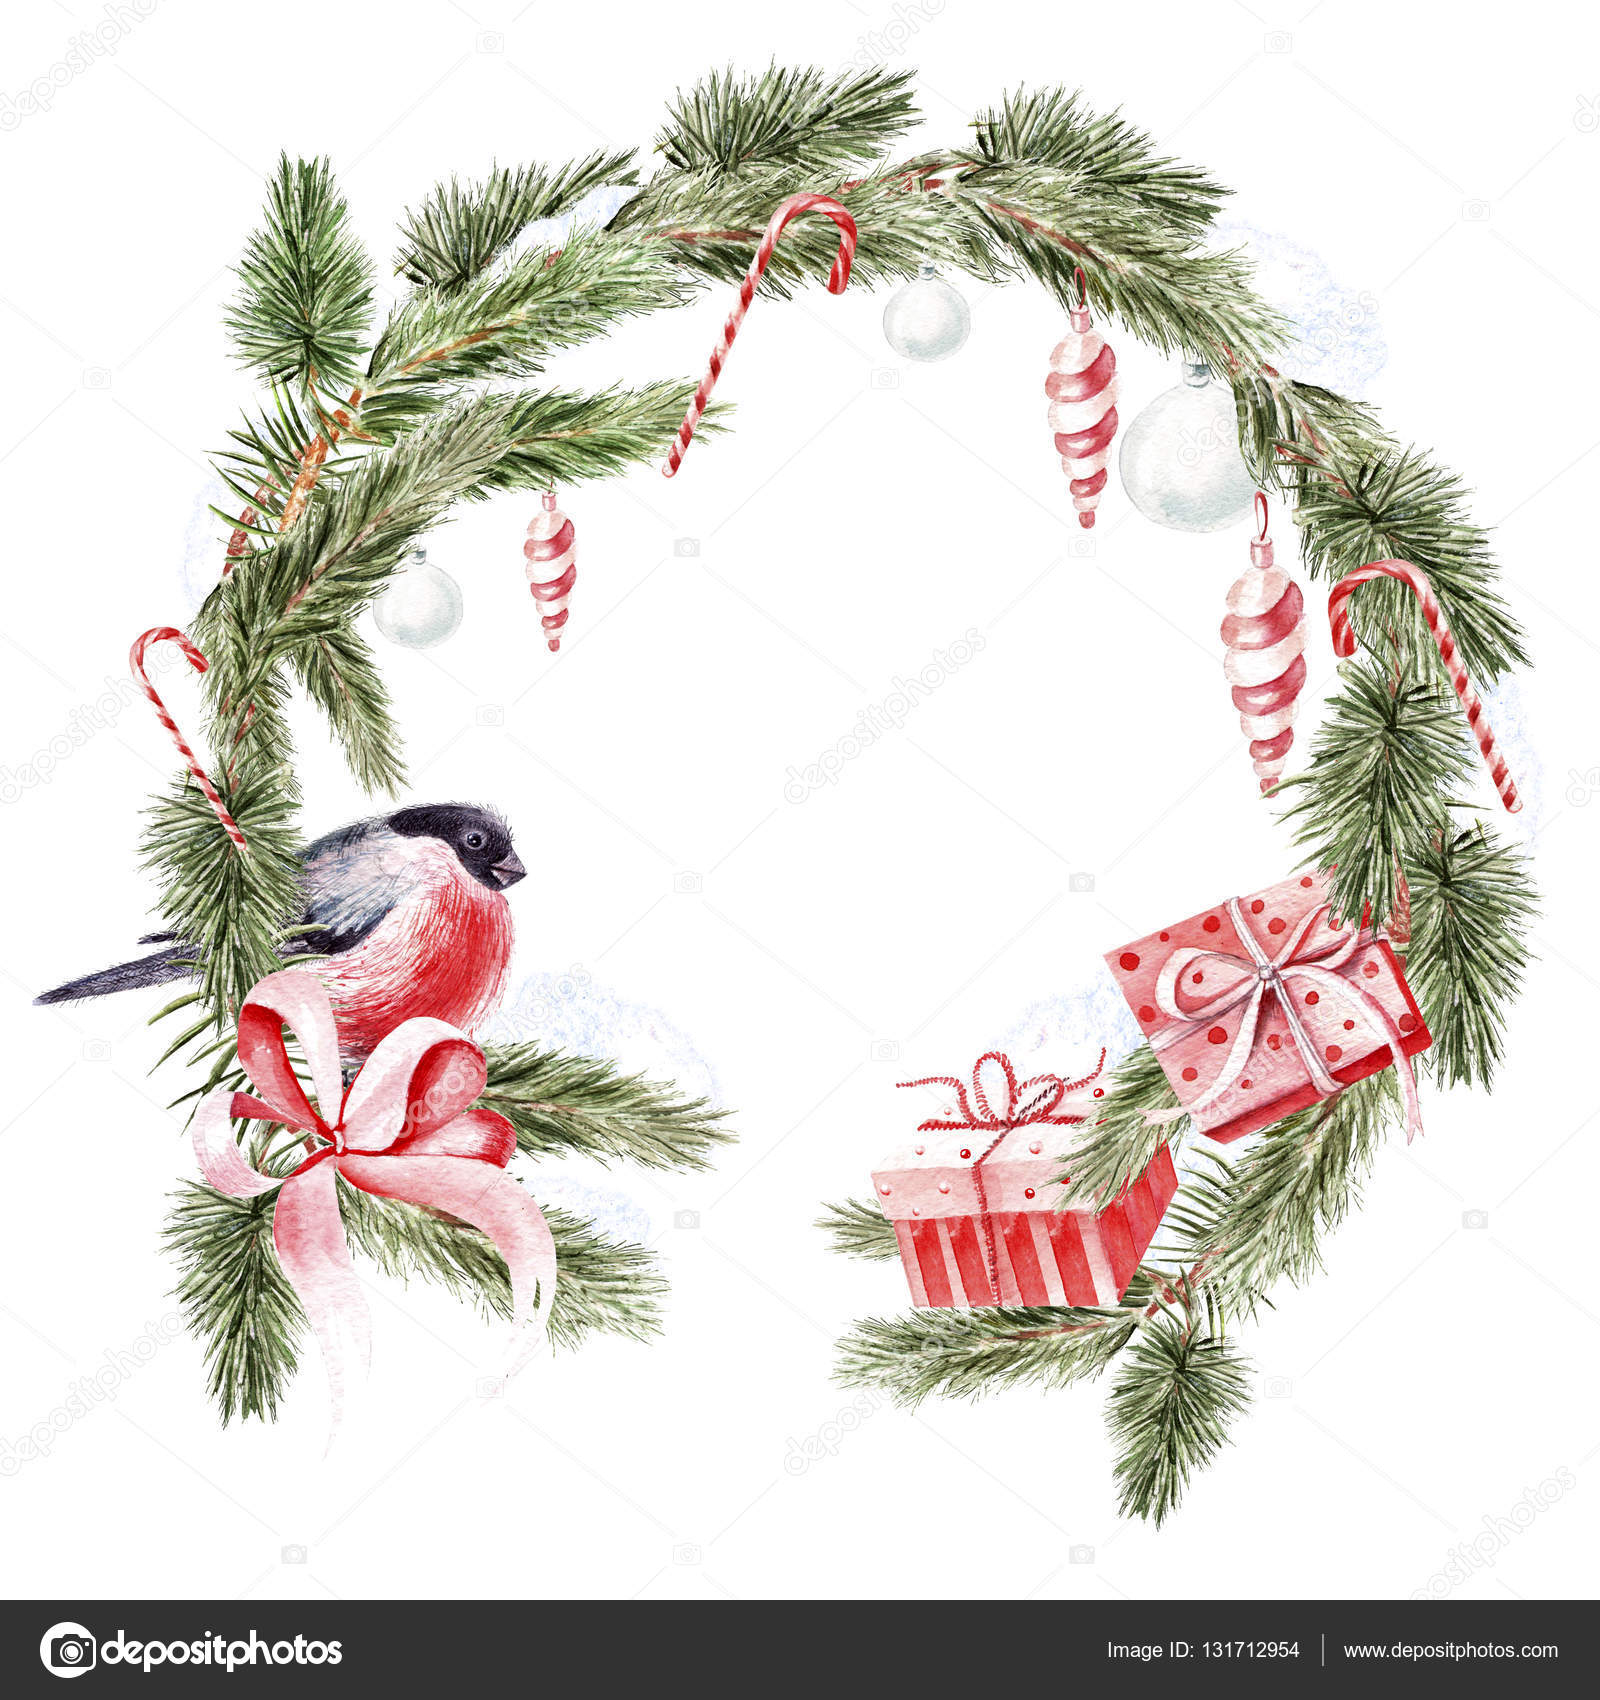 Holiday Watercolor Christmas Wreath Stock Photo Image By C Knopazyzy 131712954